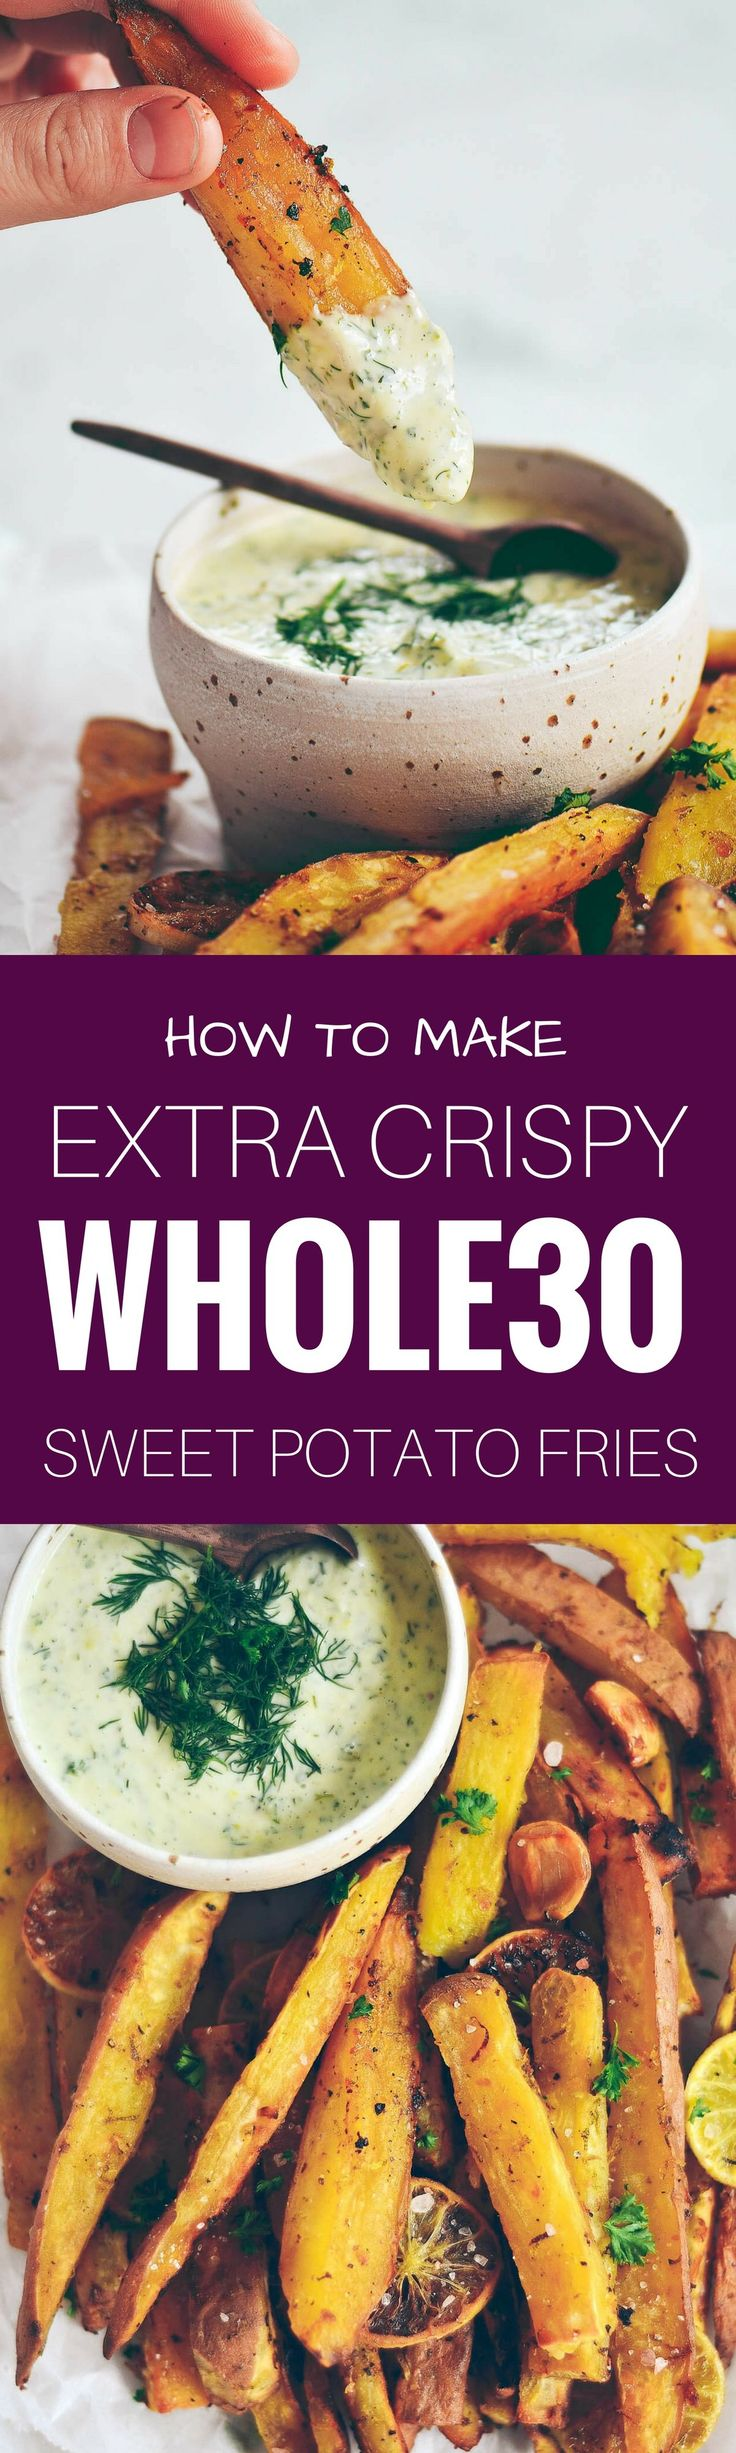 Whole 30 Extra Crispy Garlic Lime Sweet Potato Fries | Paleo Gluten Free Eats https://www.ukappliancesdirect.com/product/bosch-freestanding-microwave-oven-with-quartz-grill-17ltr-stainless-steel-hmt75g451b/